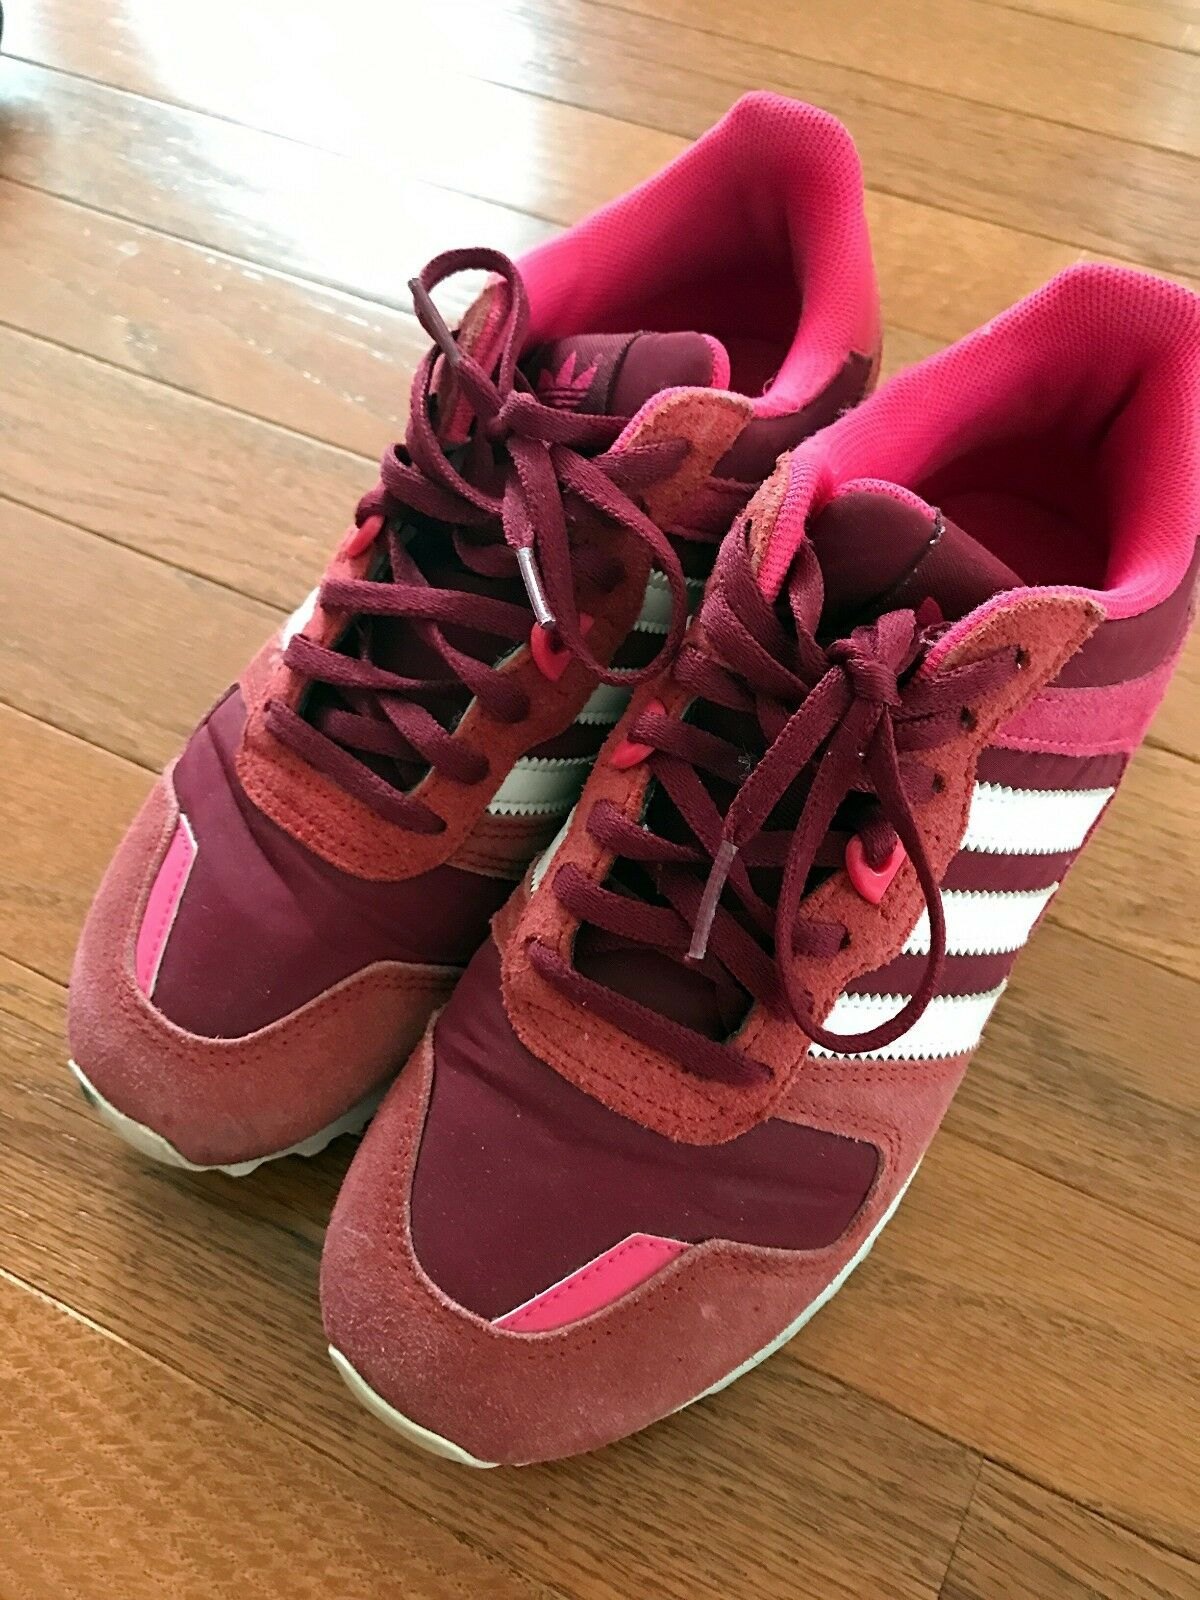 Adidas Originals ZX 700 W Pink White women Classic Shoes Sneakers Brand discount